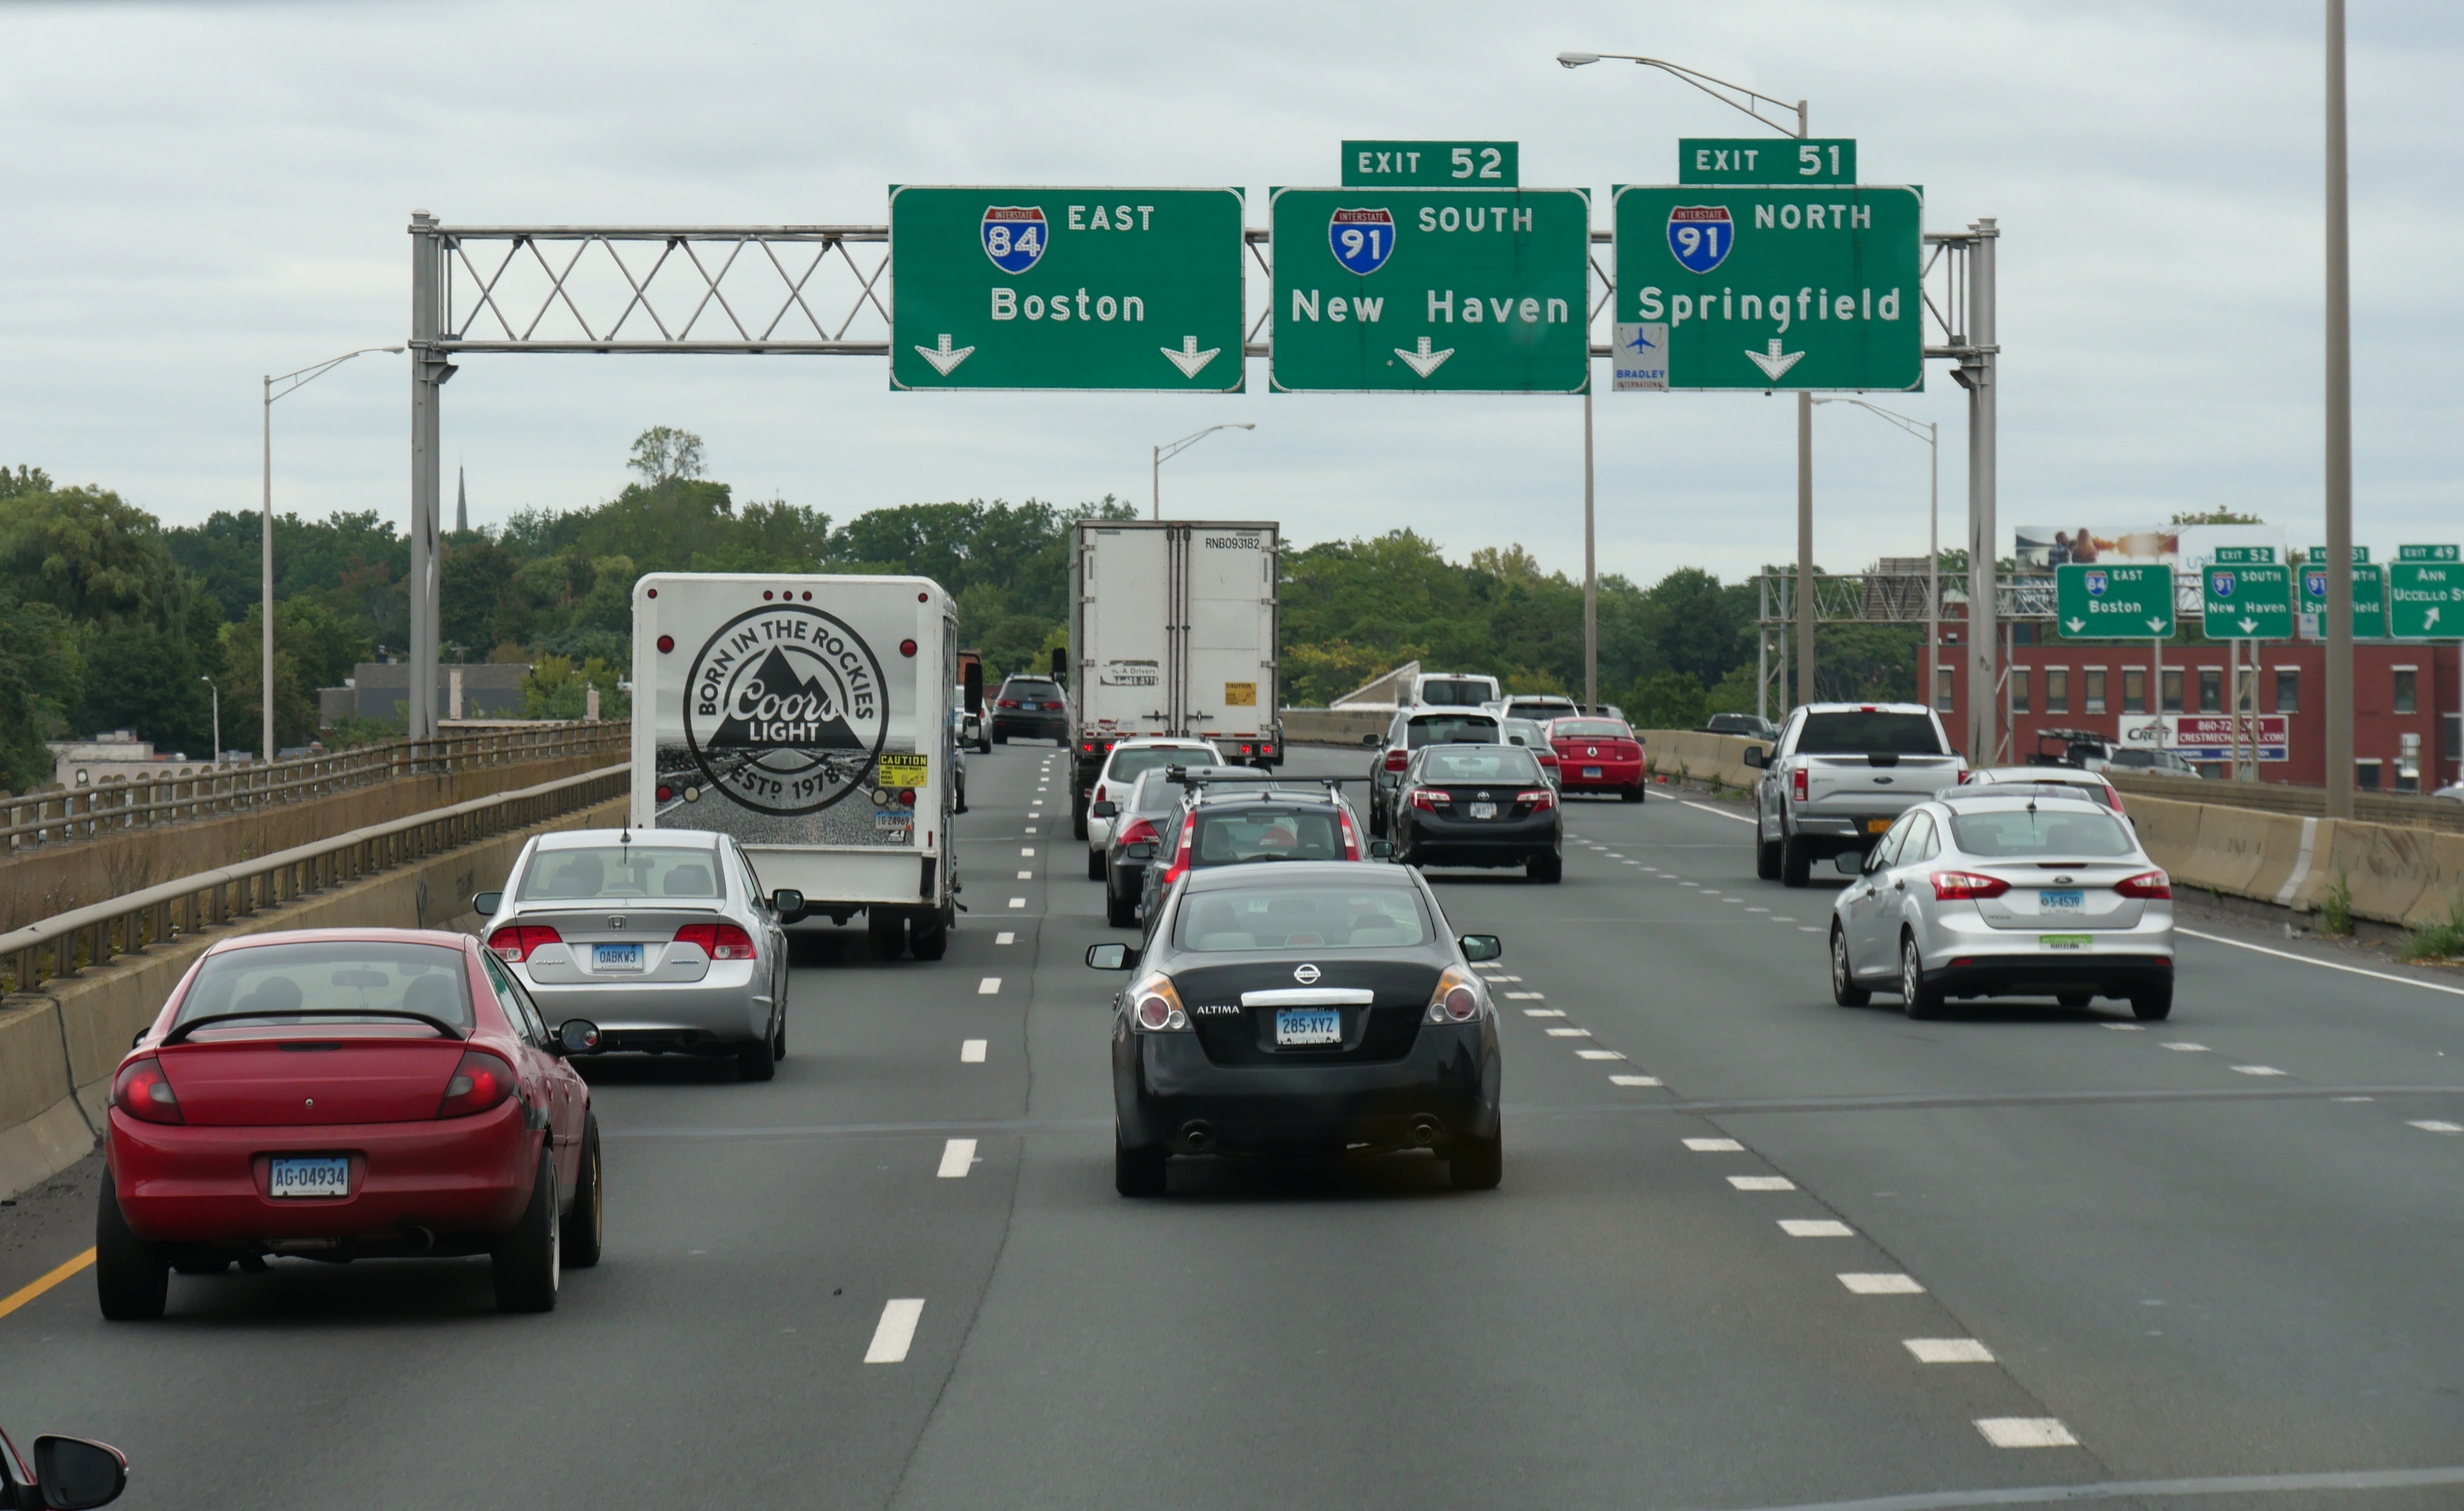 Memorial Day Weekend travel in the Boston area best during off-peak hours: MassDOT